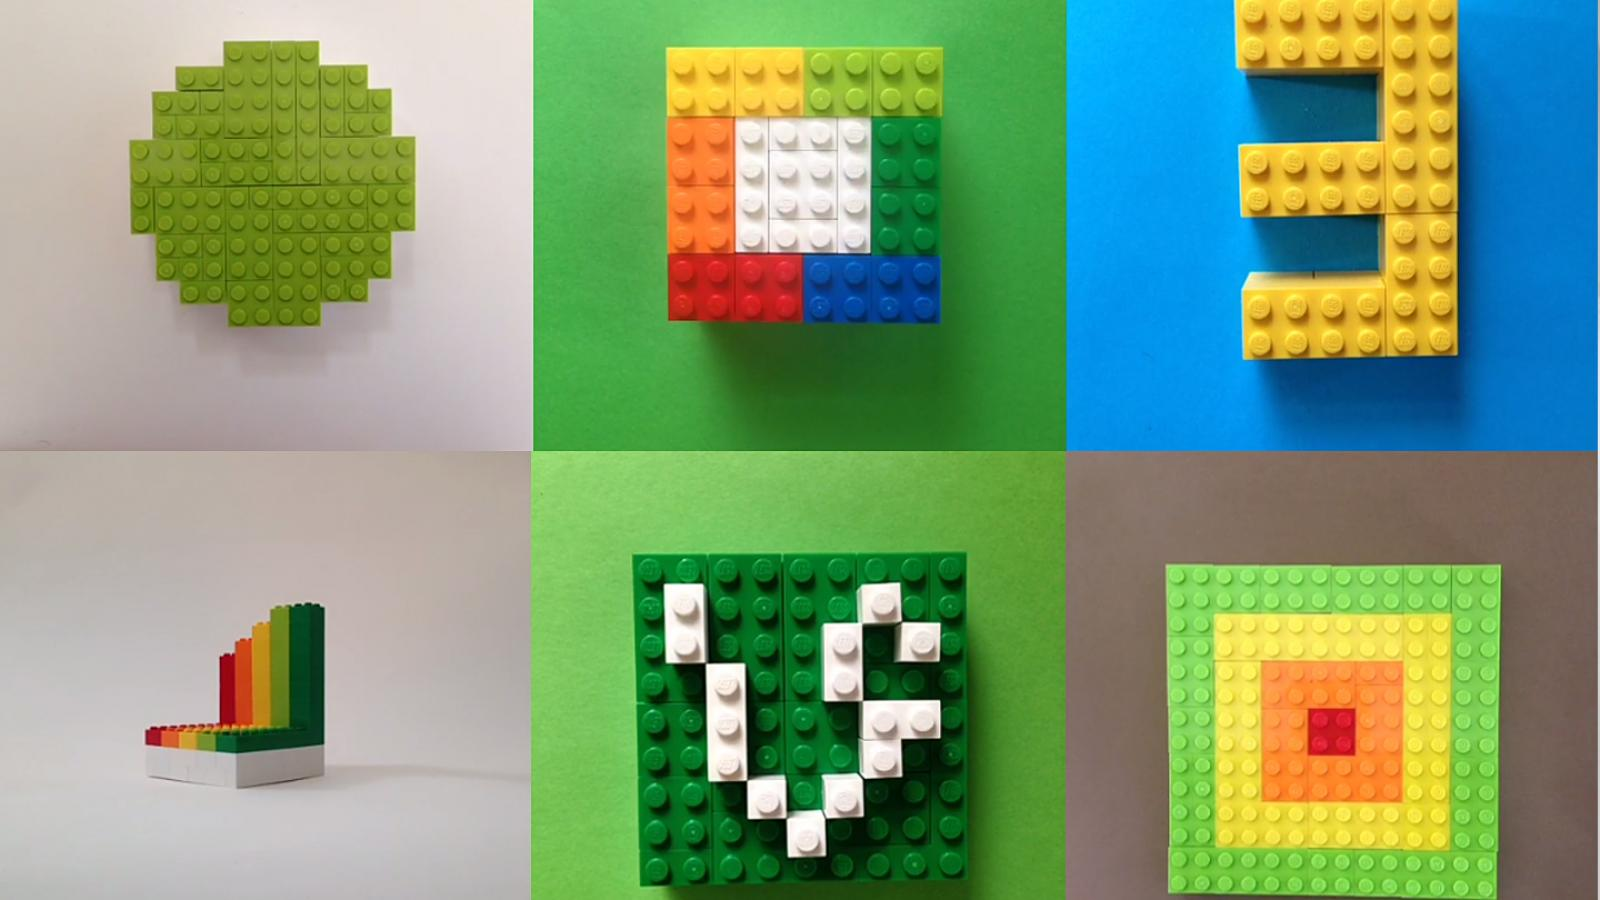 Lego Vines Project by Mark Weaver